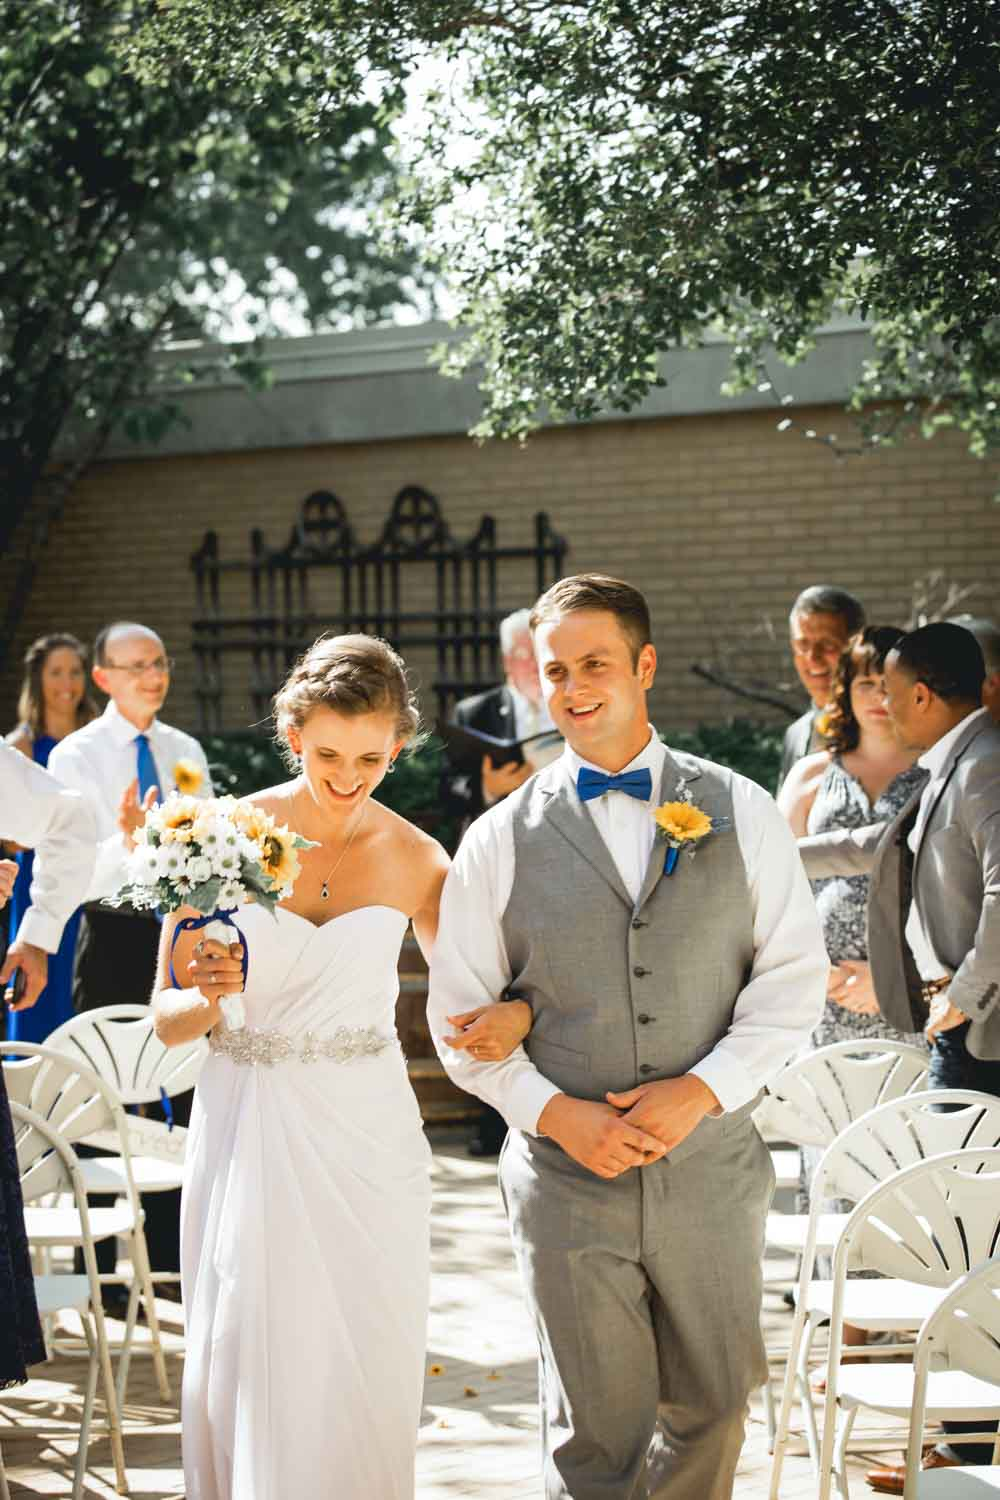 Megan & Josiah smile in celebration after getting married at Raleigh's NC State University Club wedding venue.